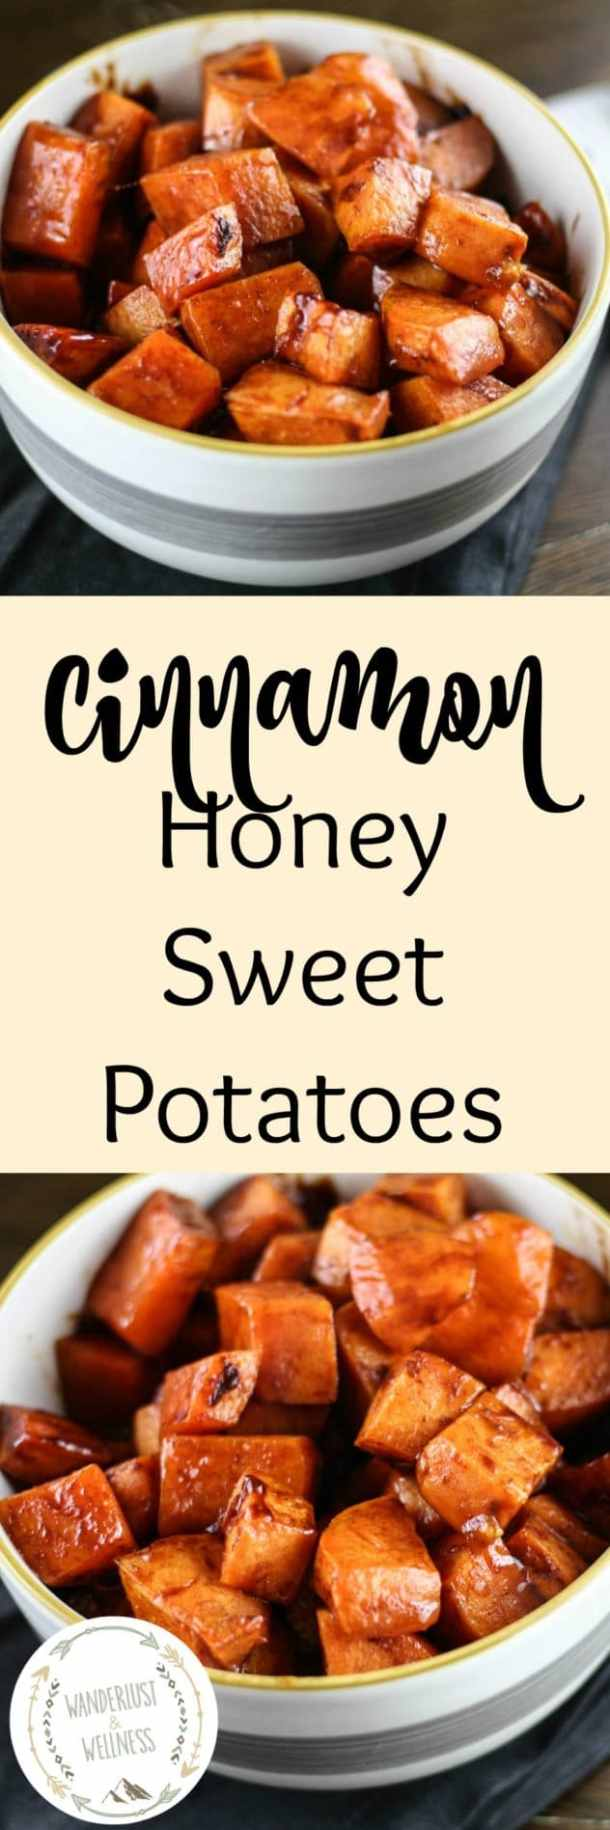 Cinnamon Honey Sweet Potatoes